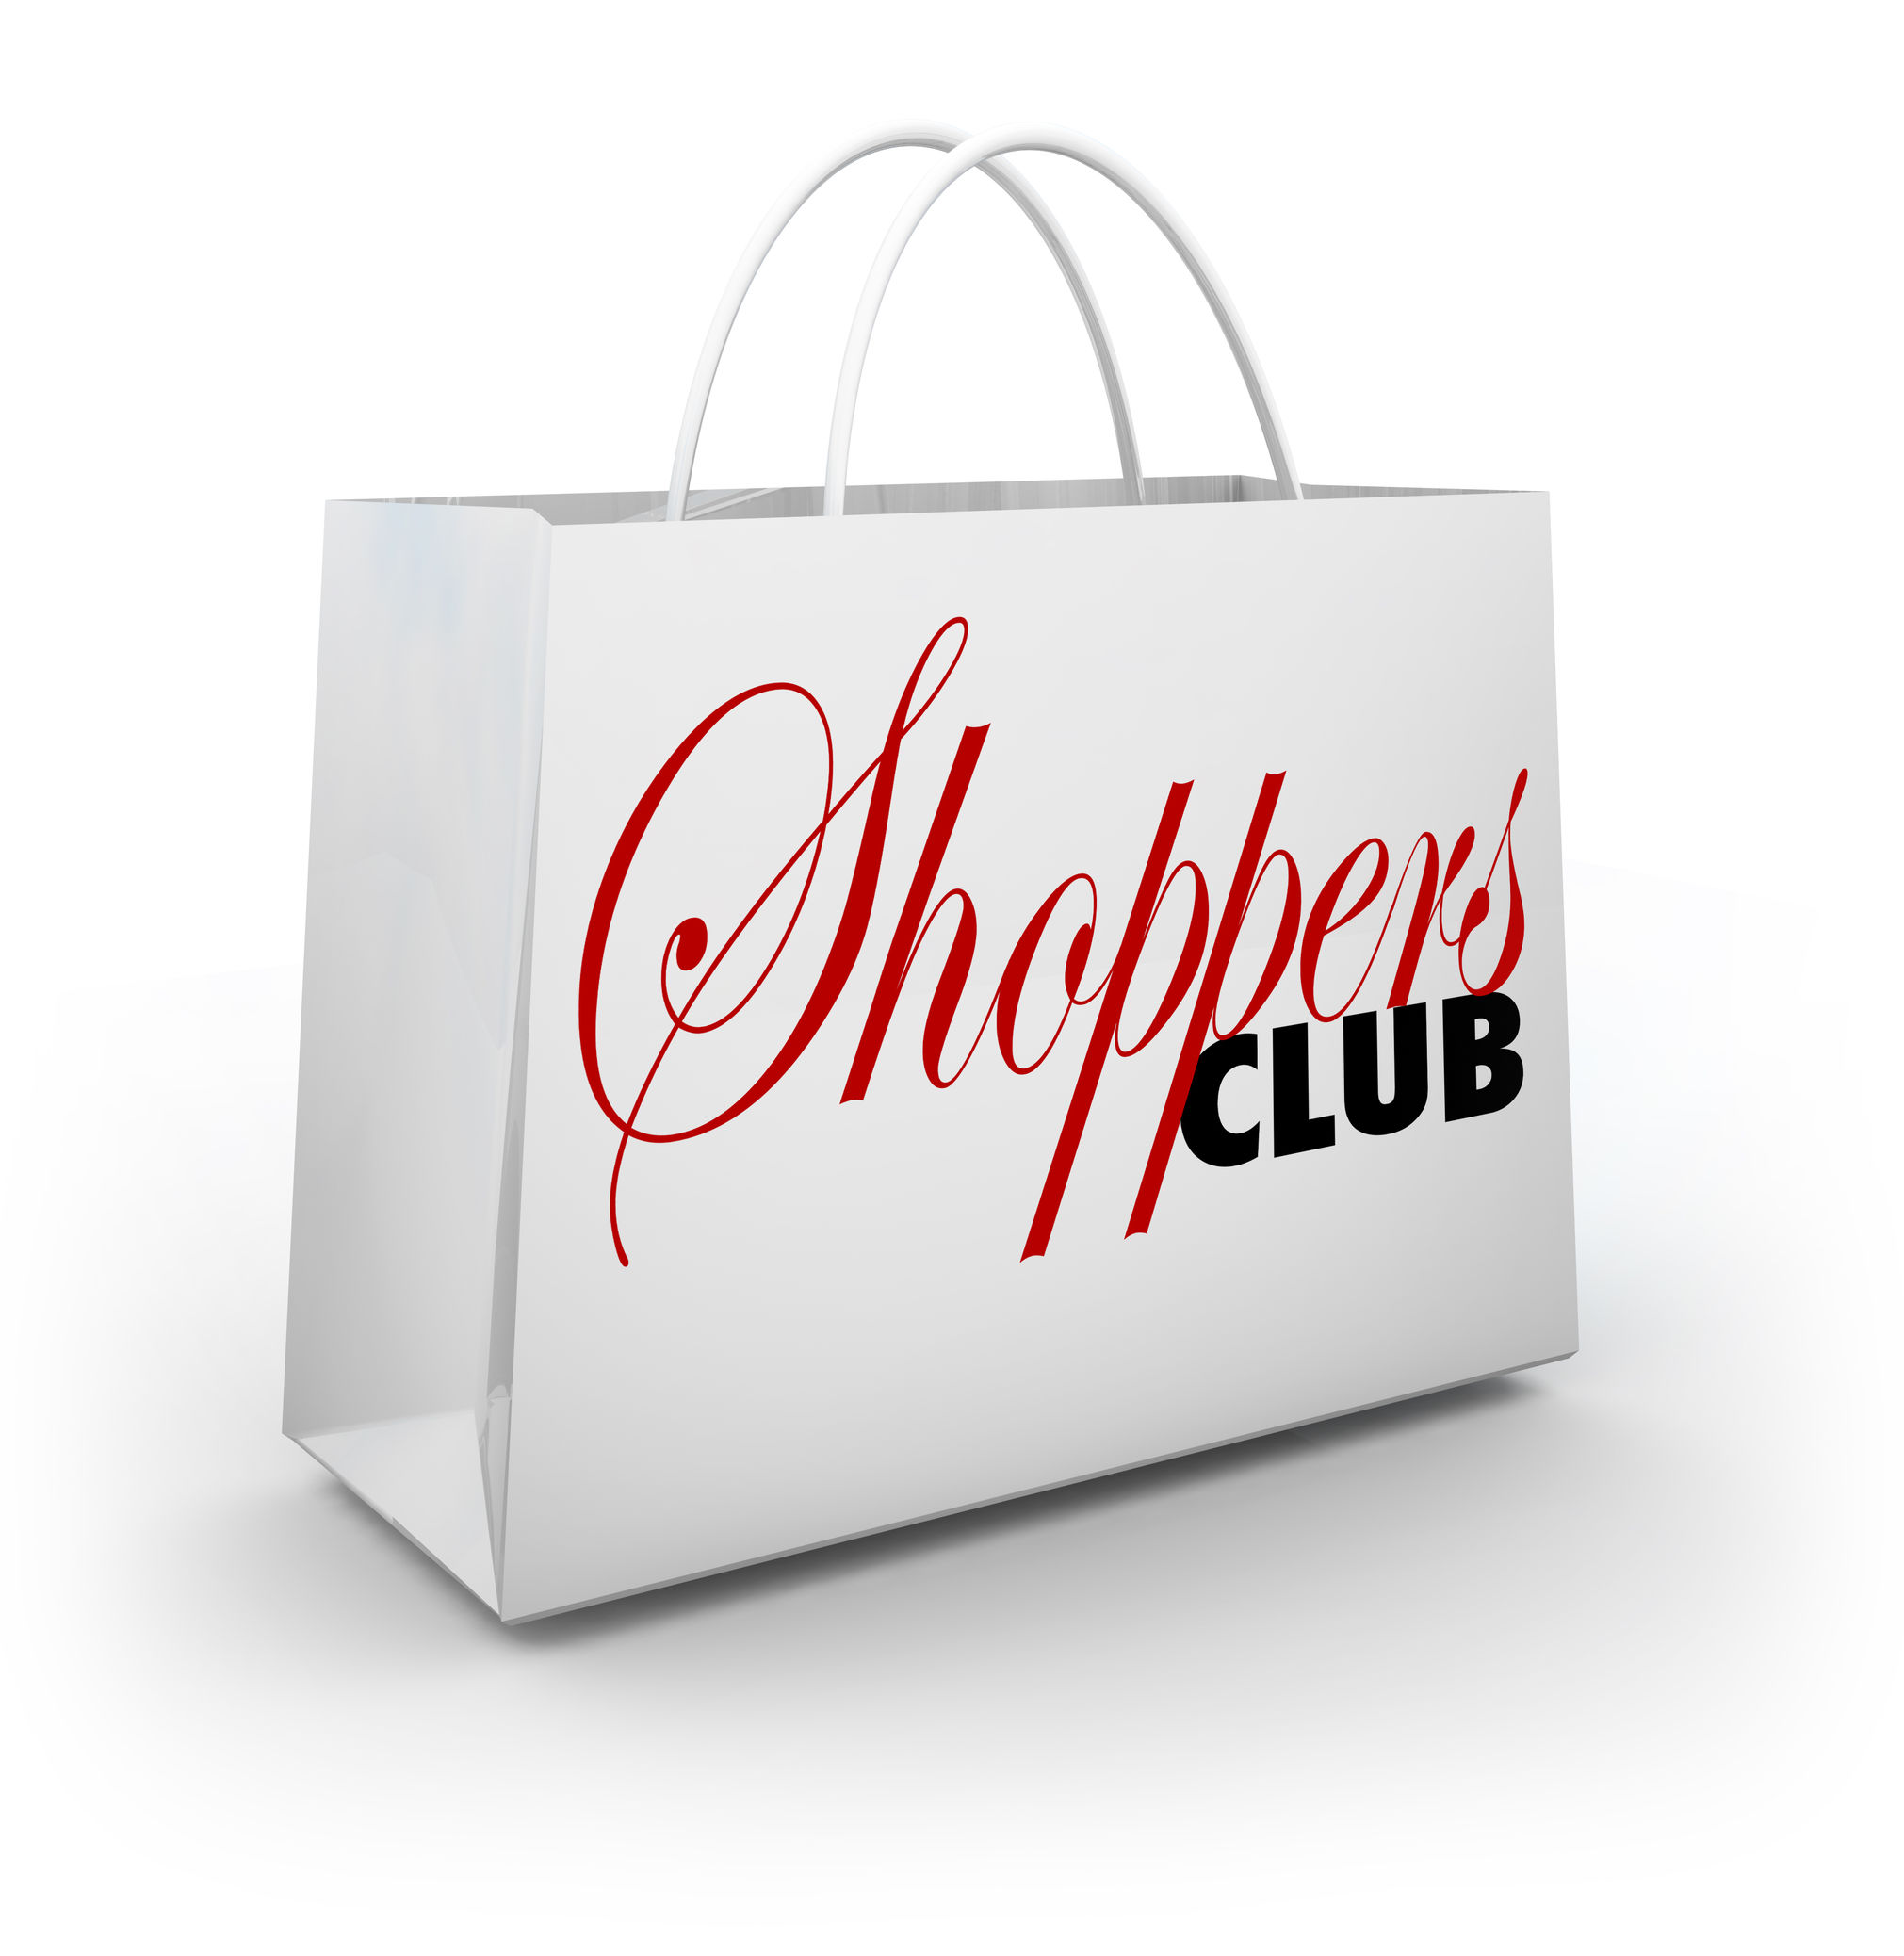 """Join the club"" retailing bad for business"